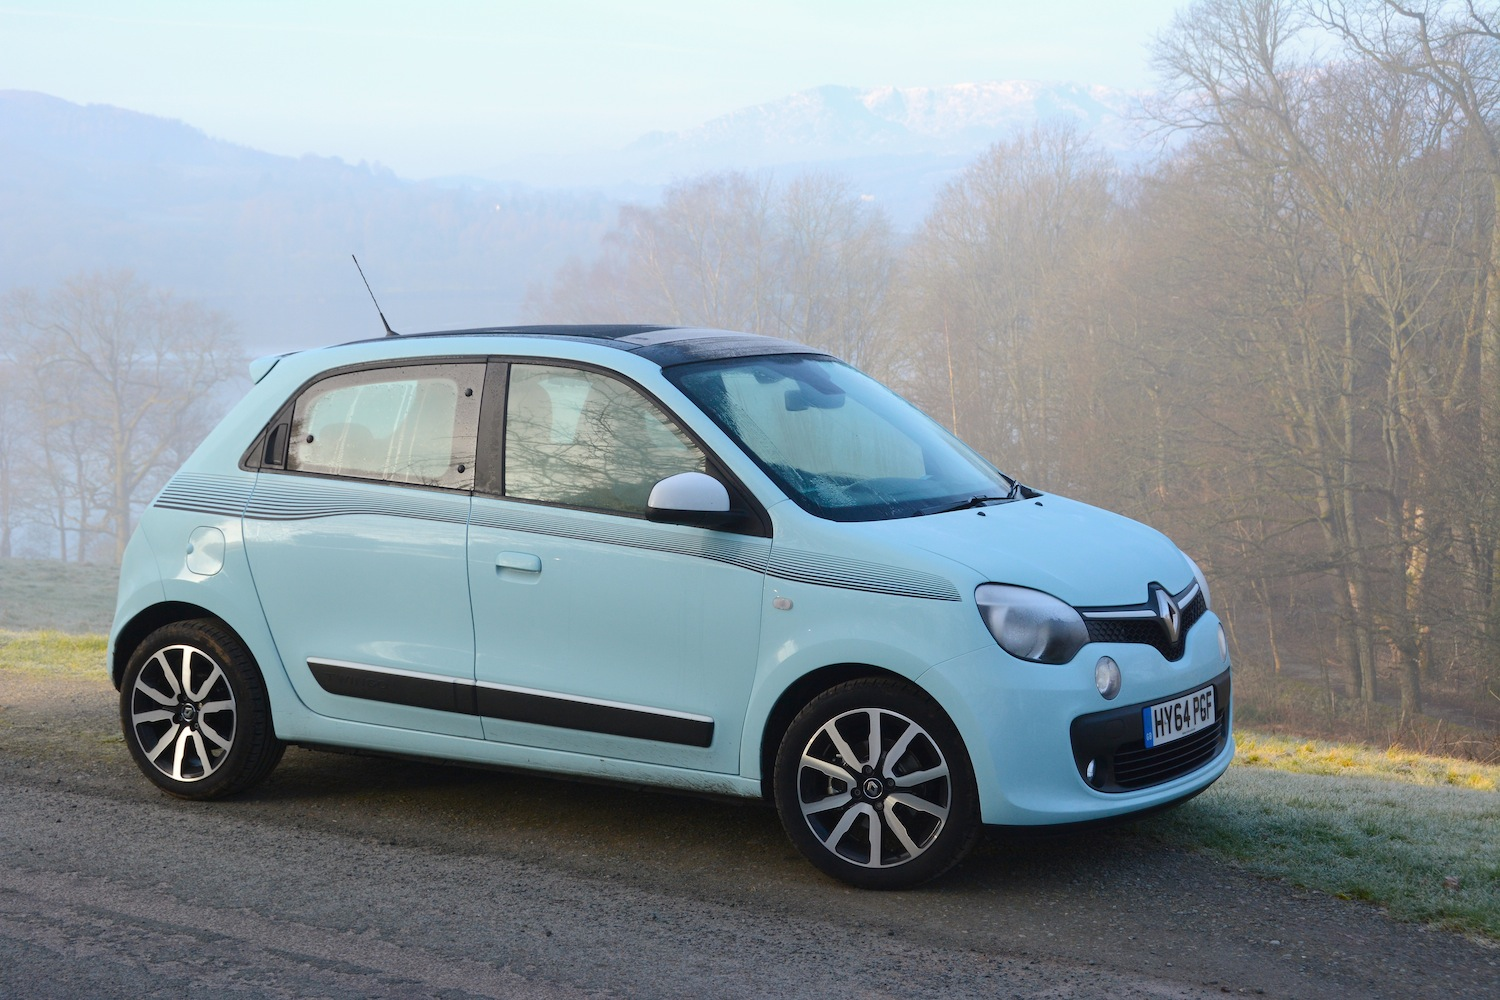 renault twingo tce 90 review. Black Bedroom Furniture Sets. Home Design Ideas